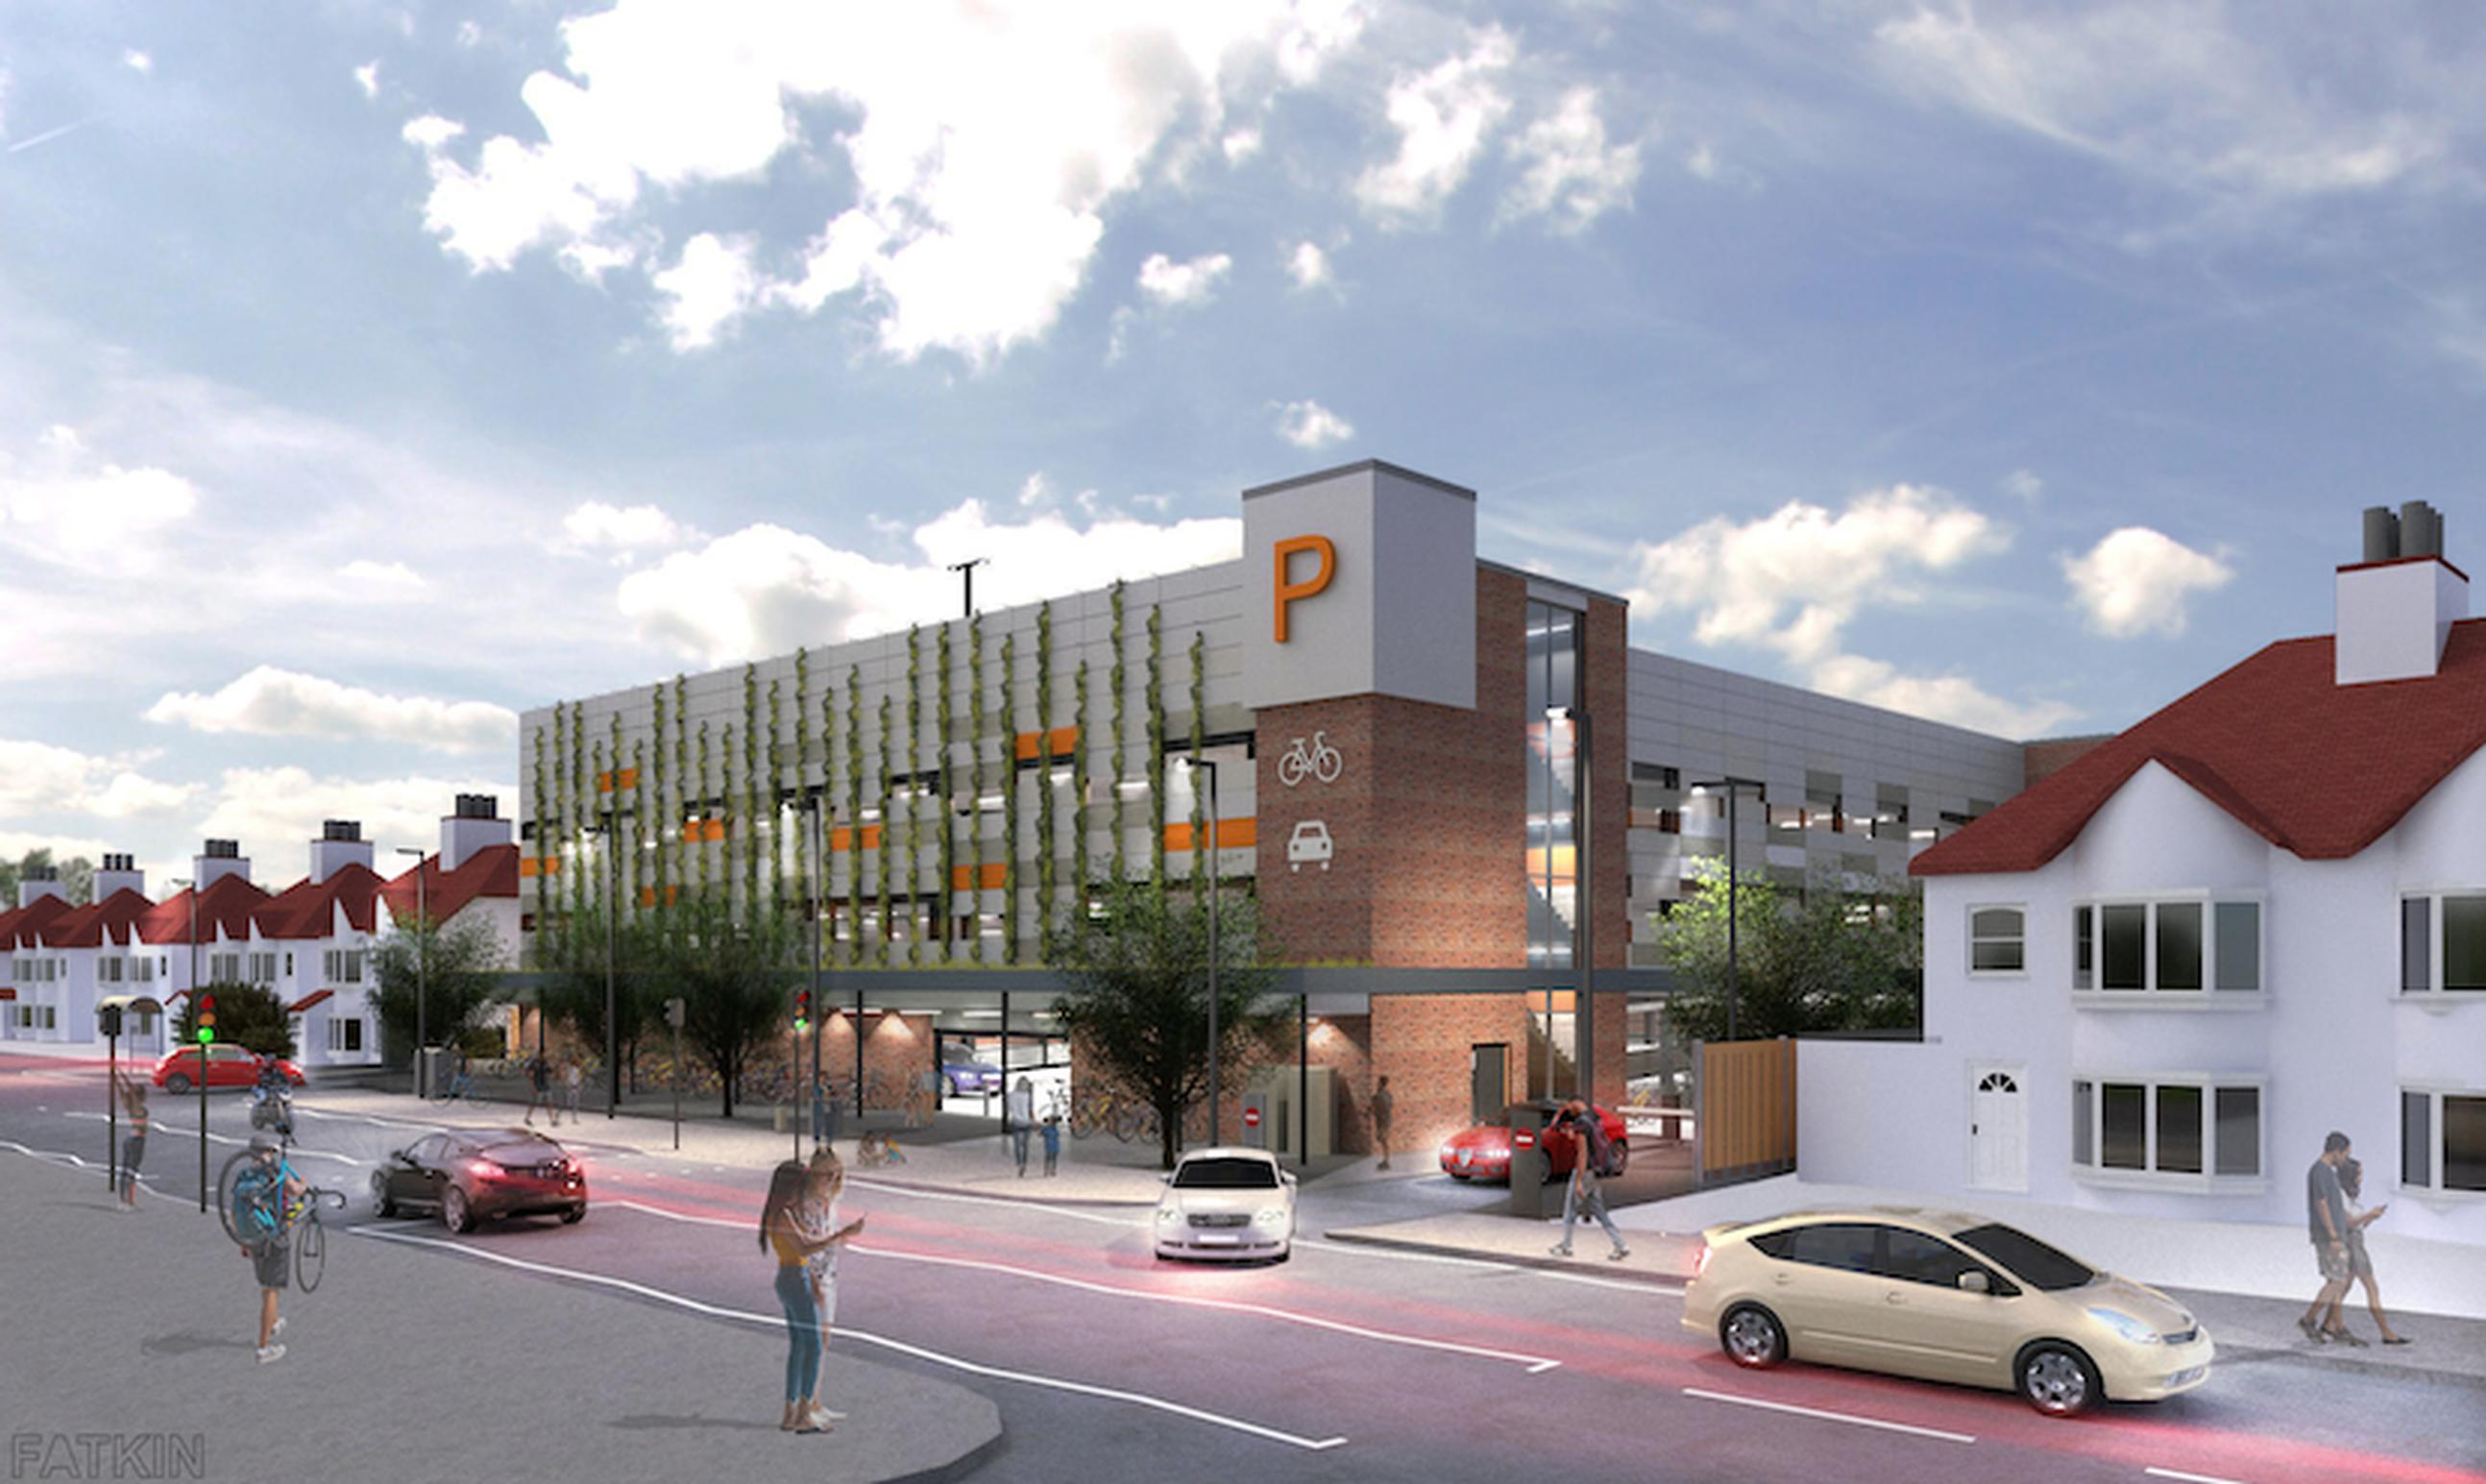 Design for a Mobility Hub for the Luton & Dunstable University Hospital